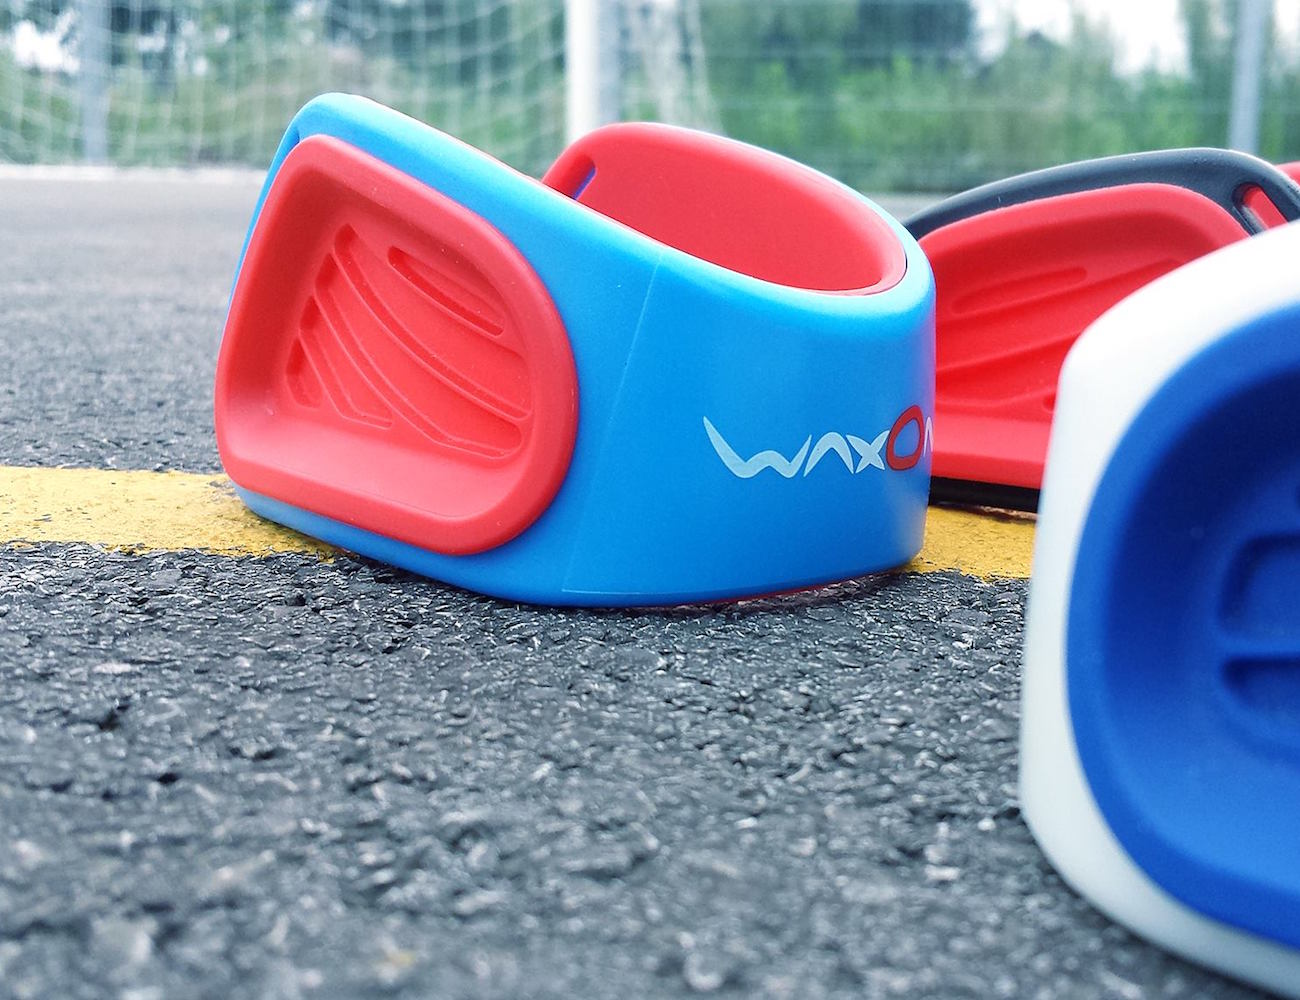 WaxOn+%E2%80%93+Easily+Accessible+Wax+For+Handball+Players